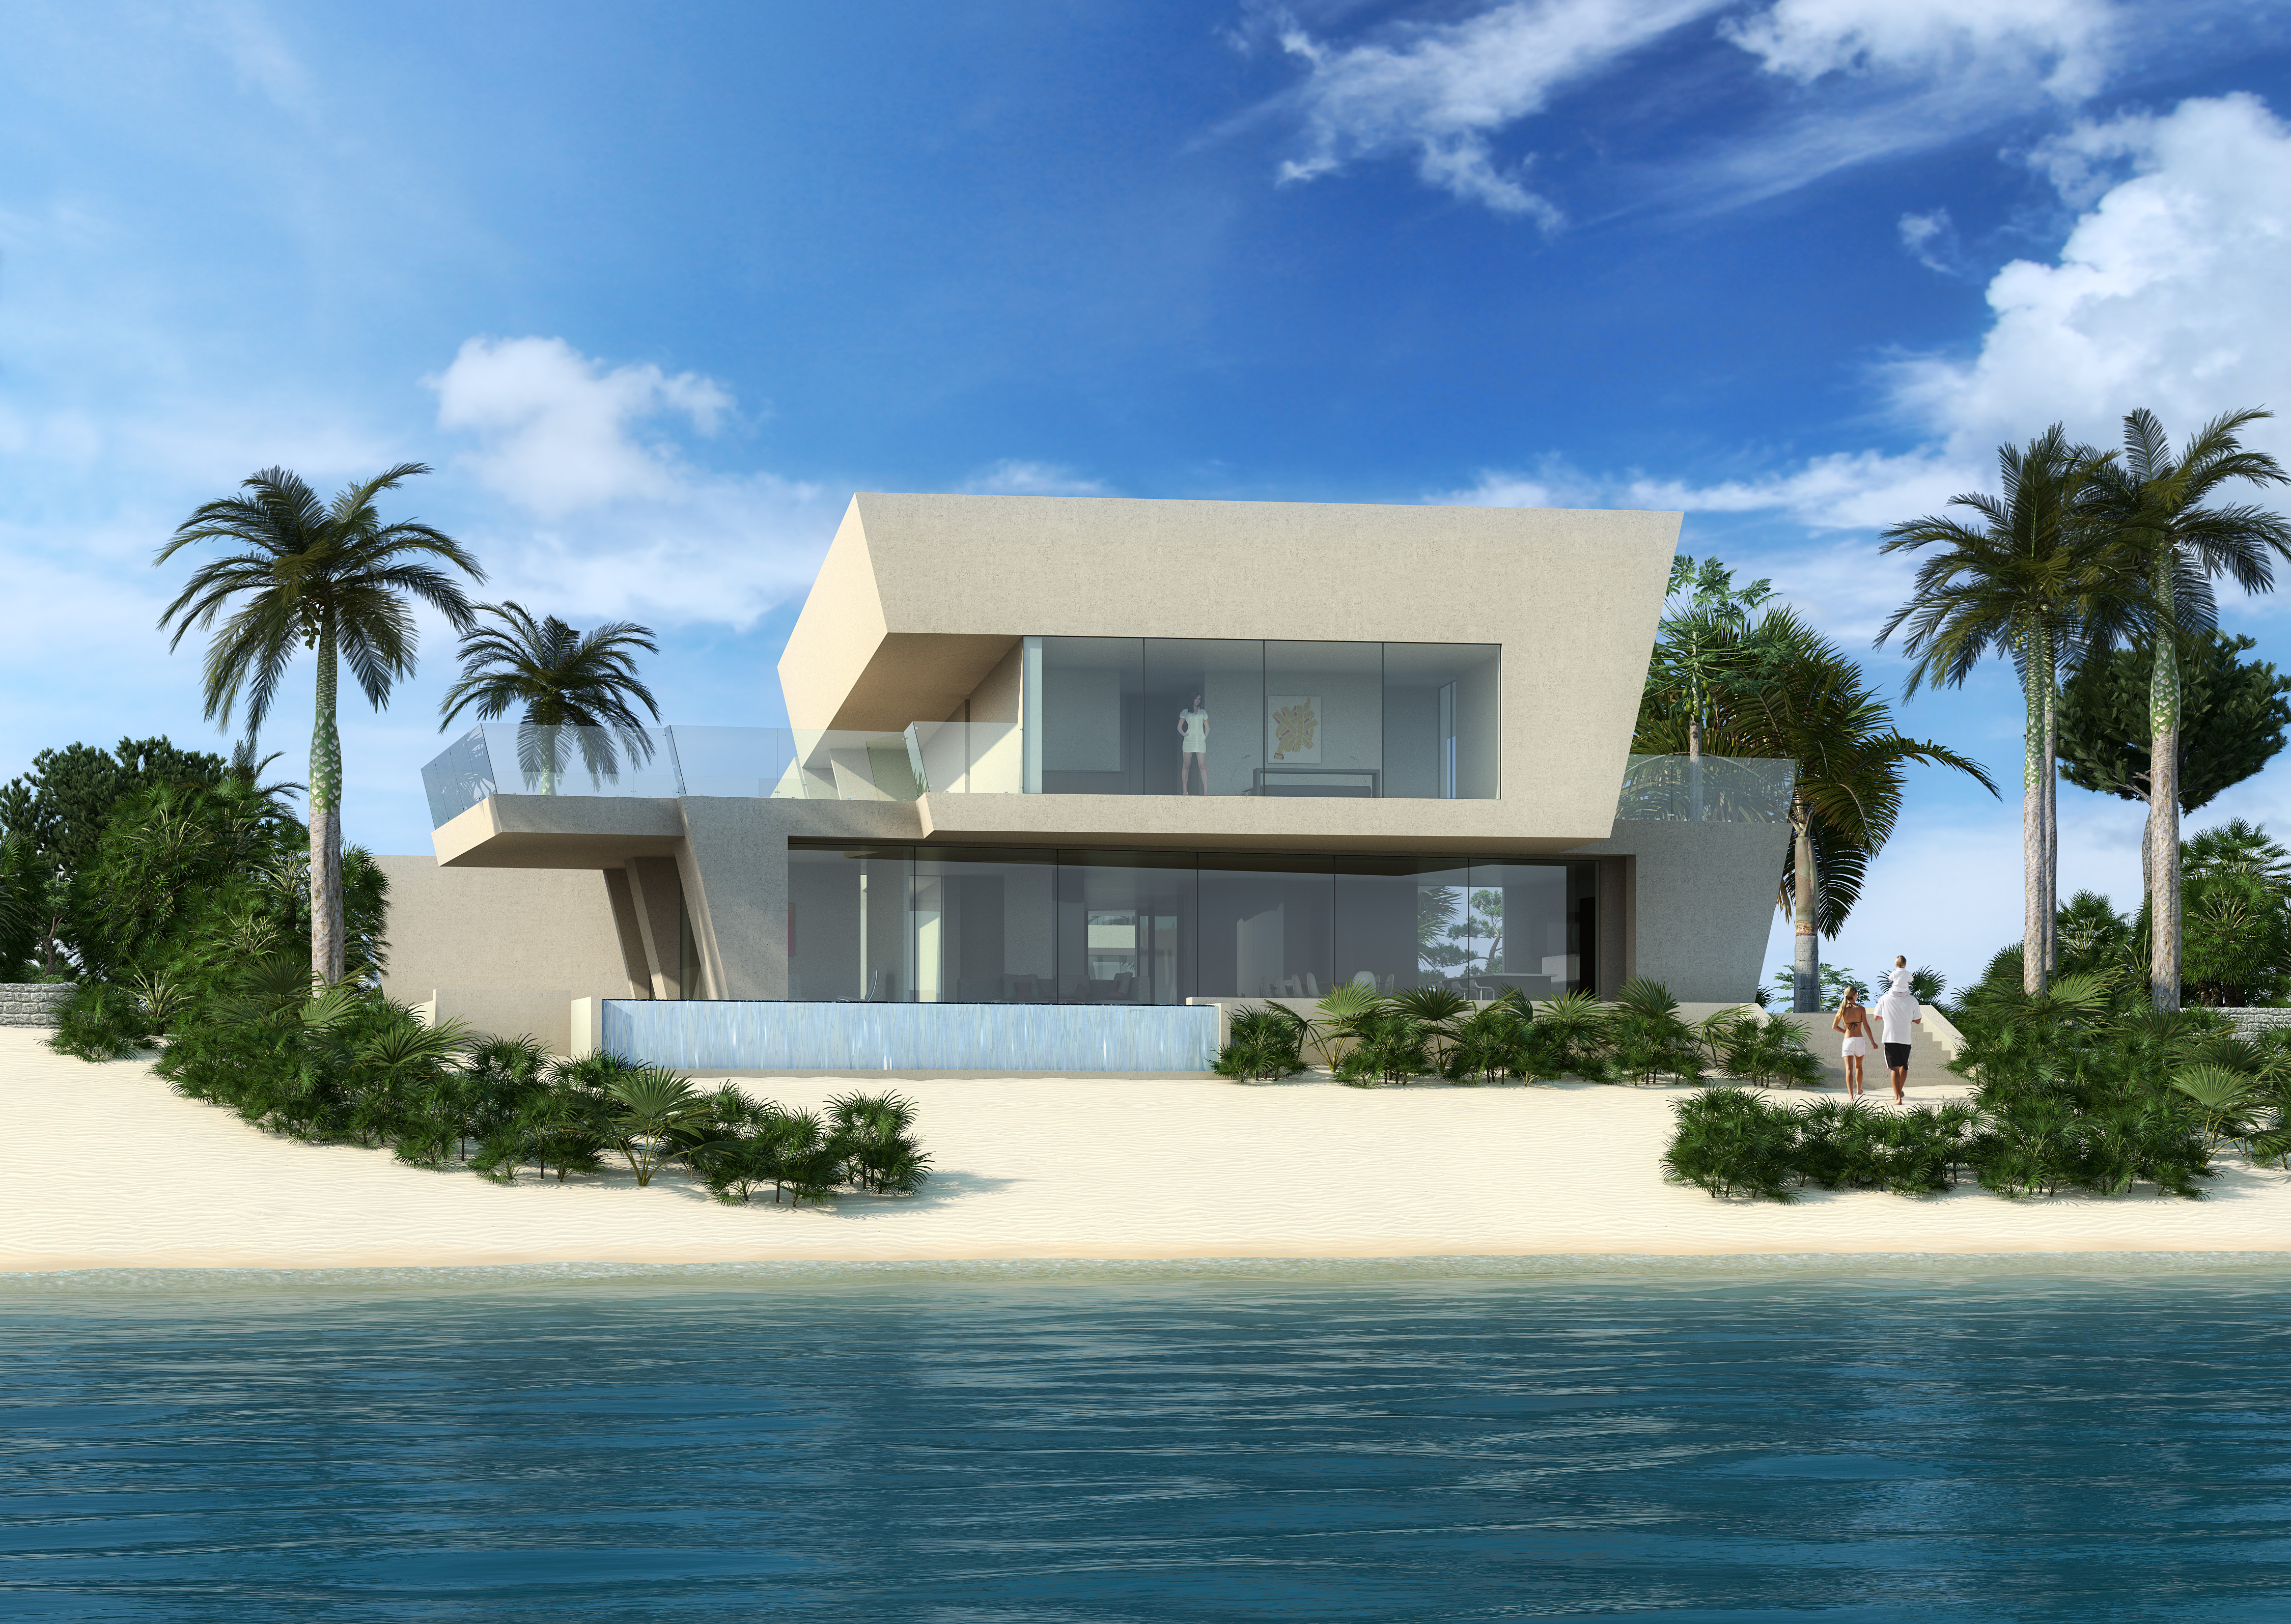 Rum point house cayman island nicolas tye architects for Houses images pictures